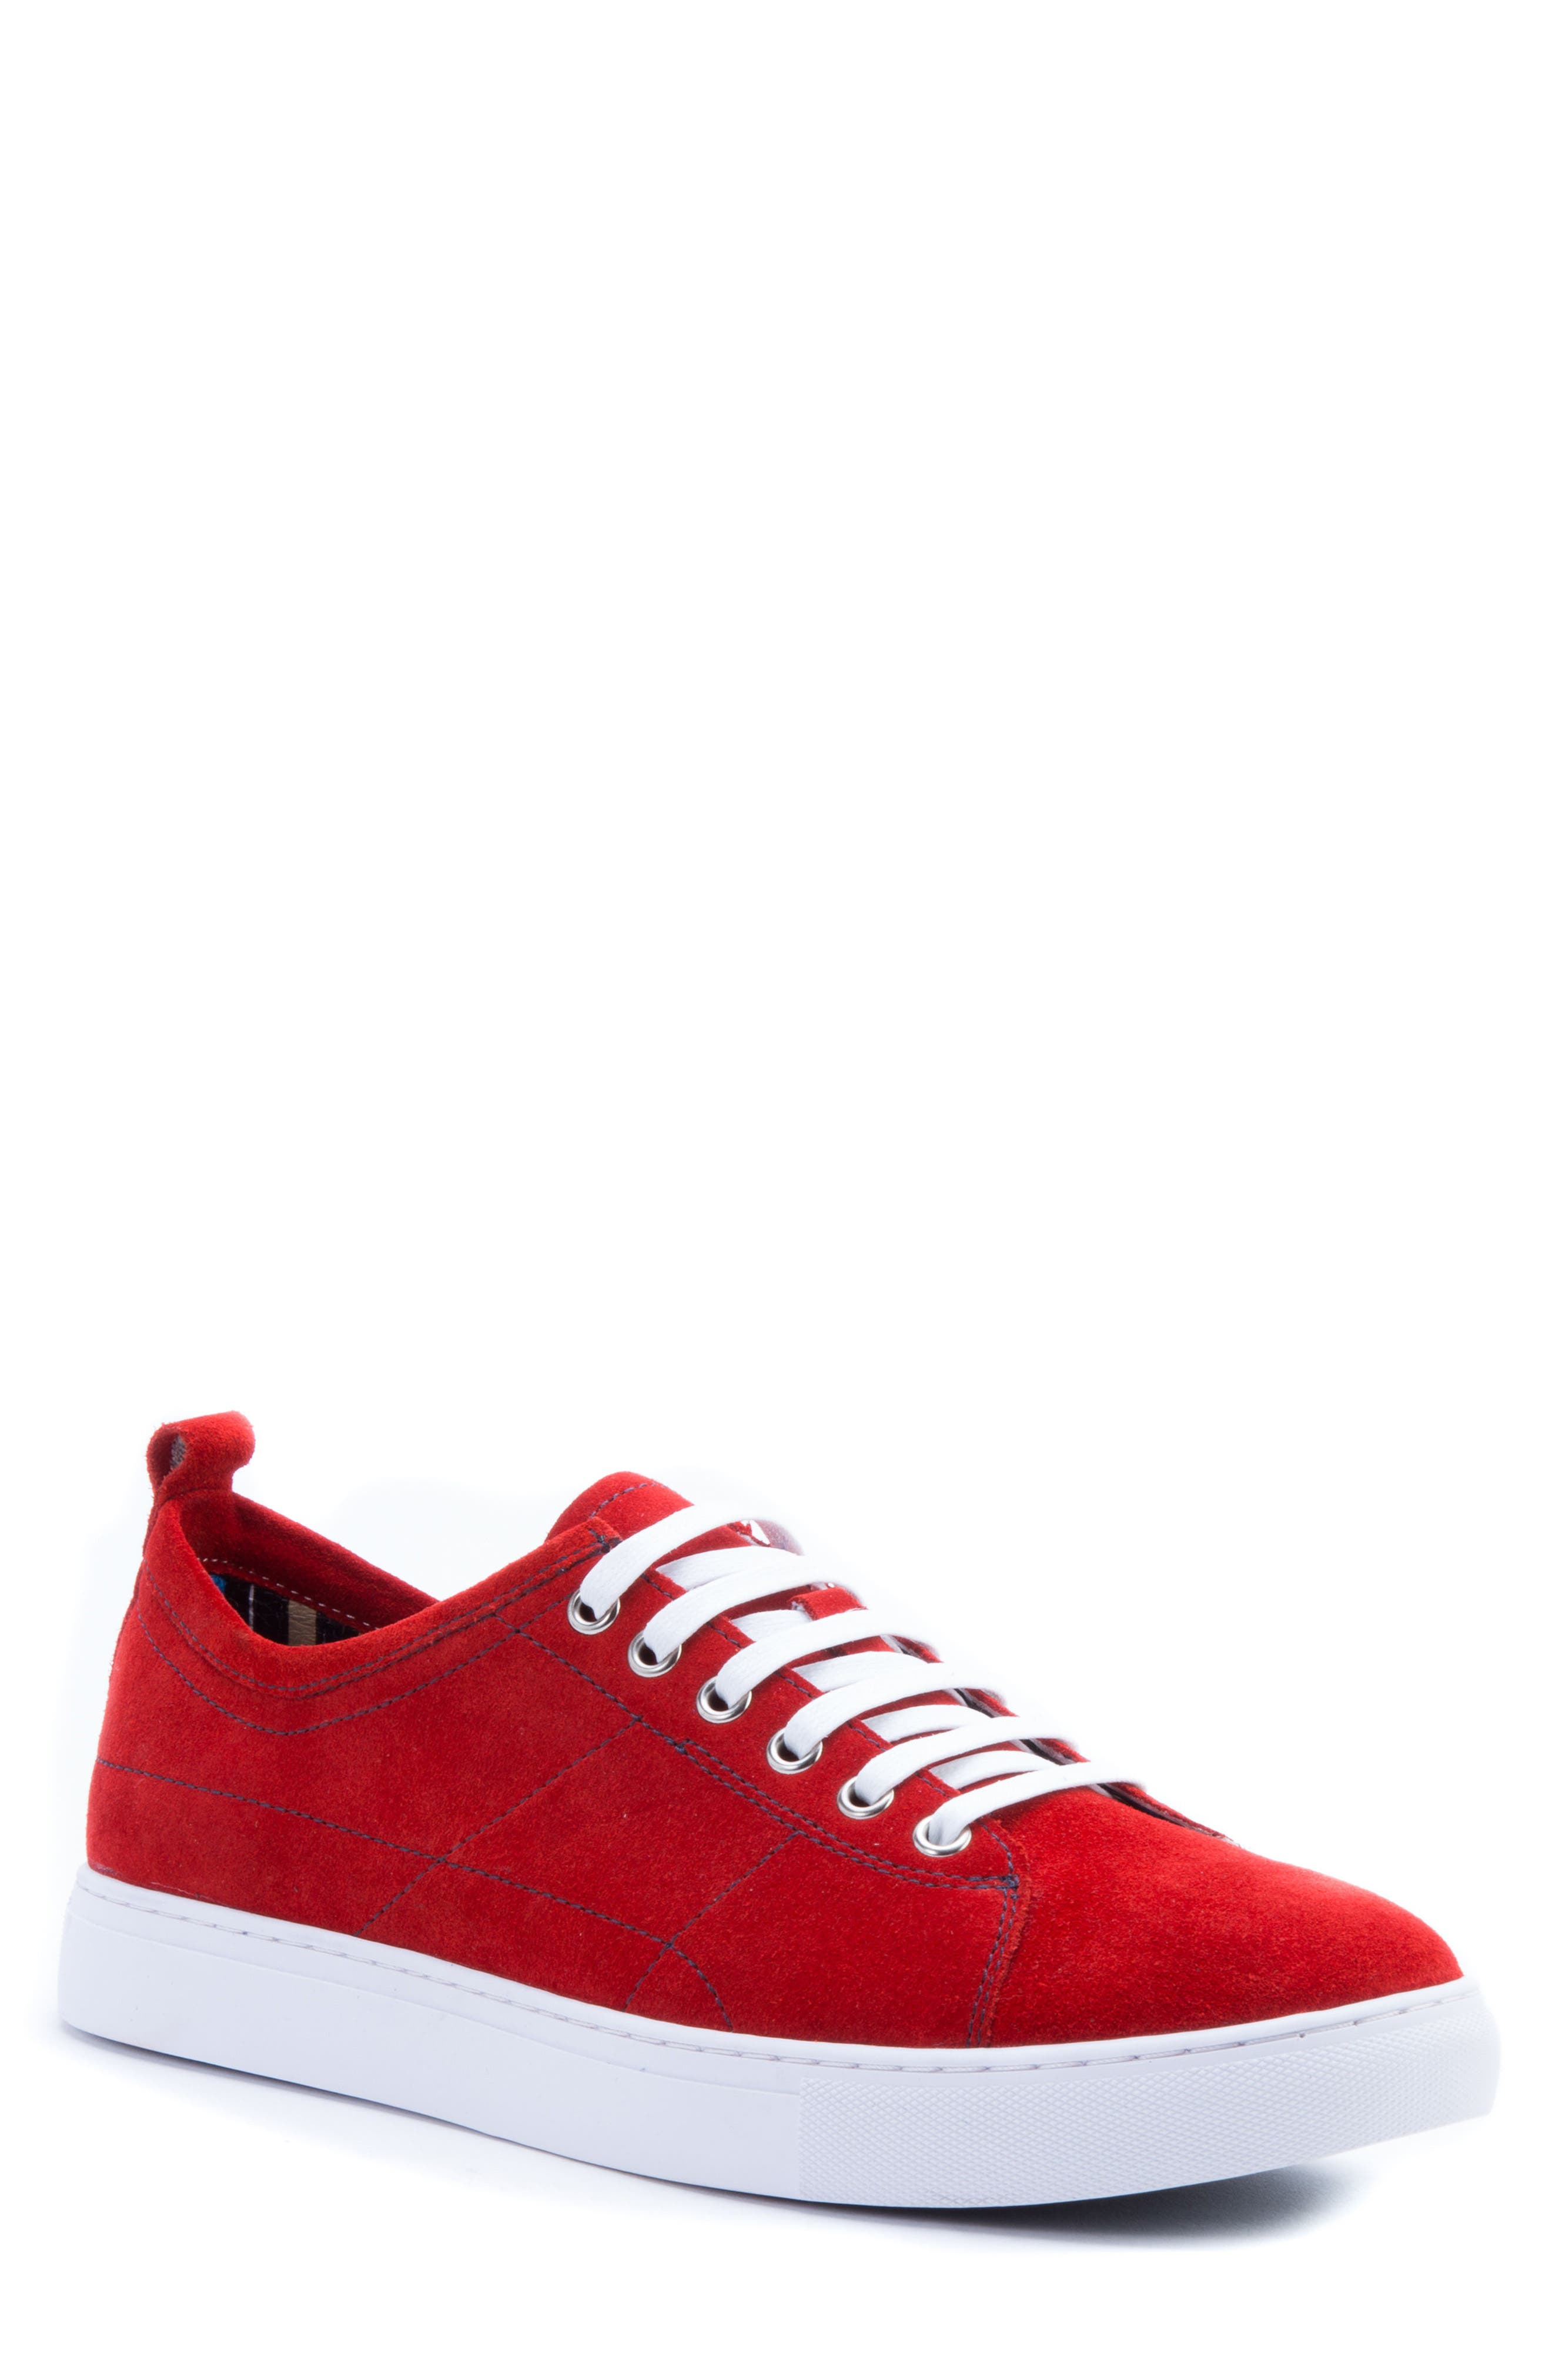 Ernesto Low Top Sneaker,                             Main thumbnail 1, color,                             Red Suede